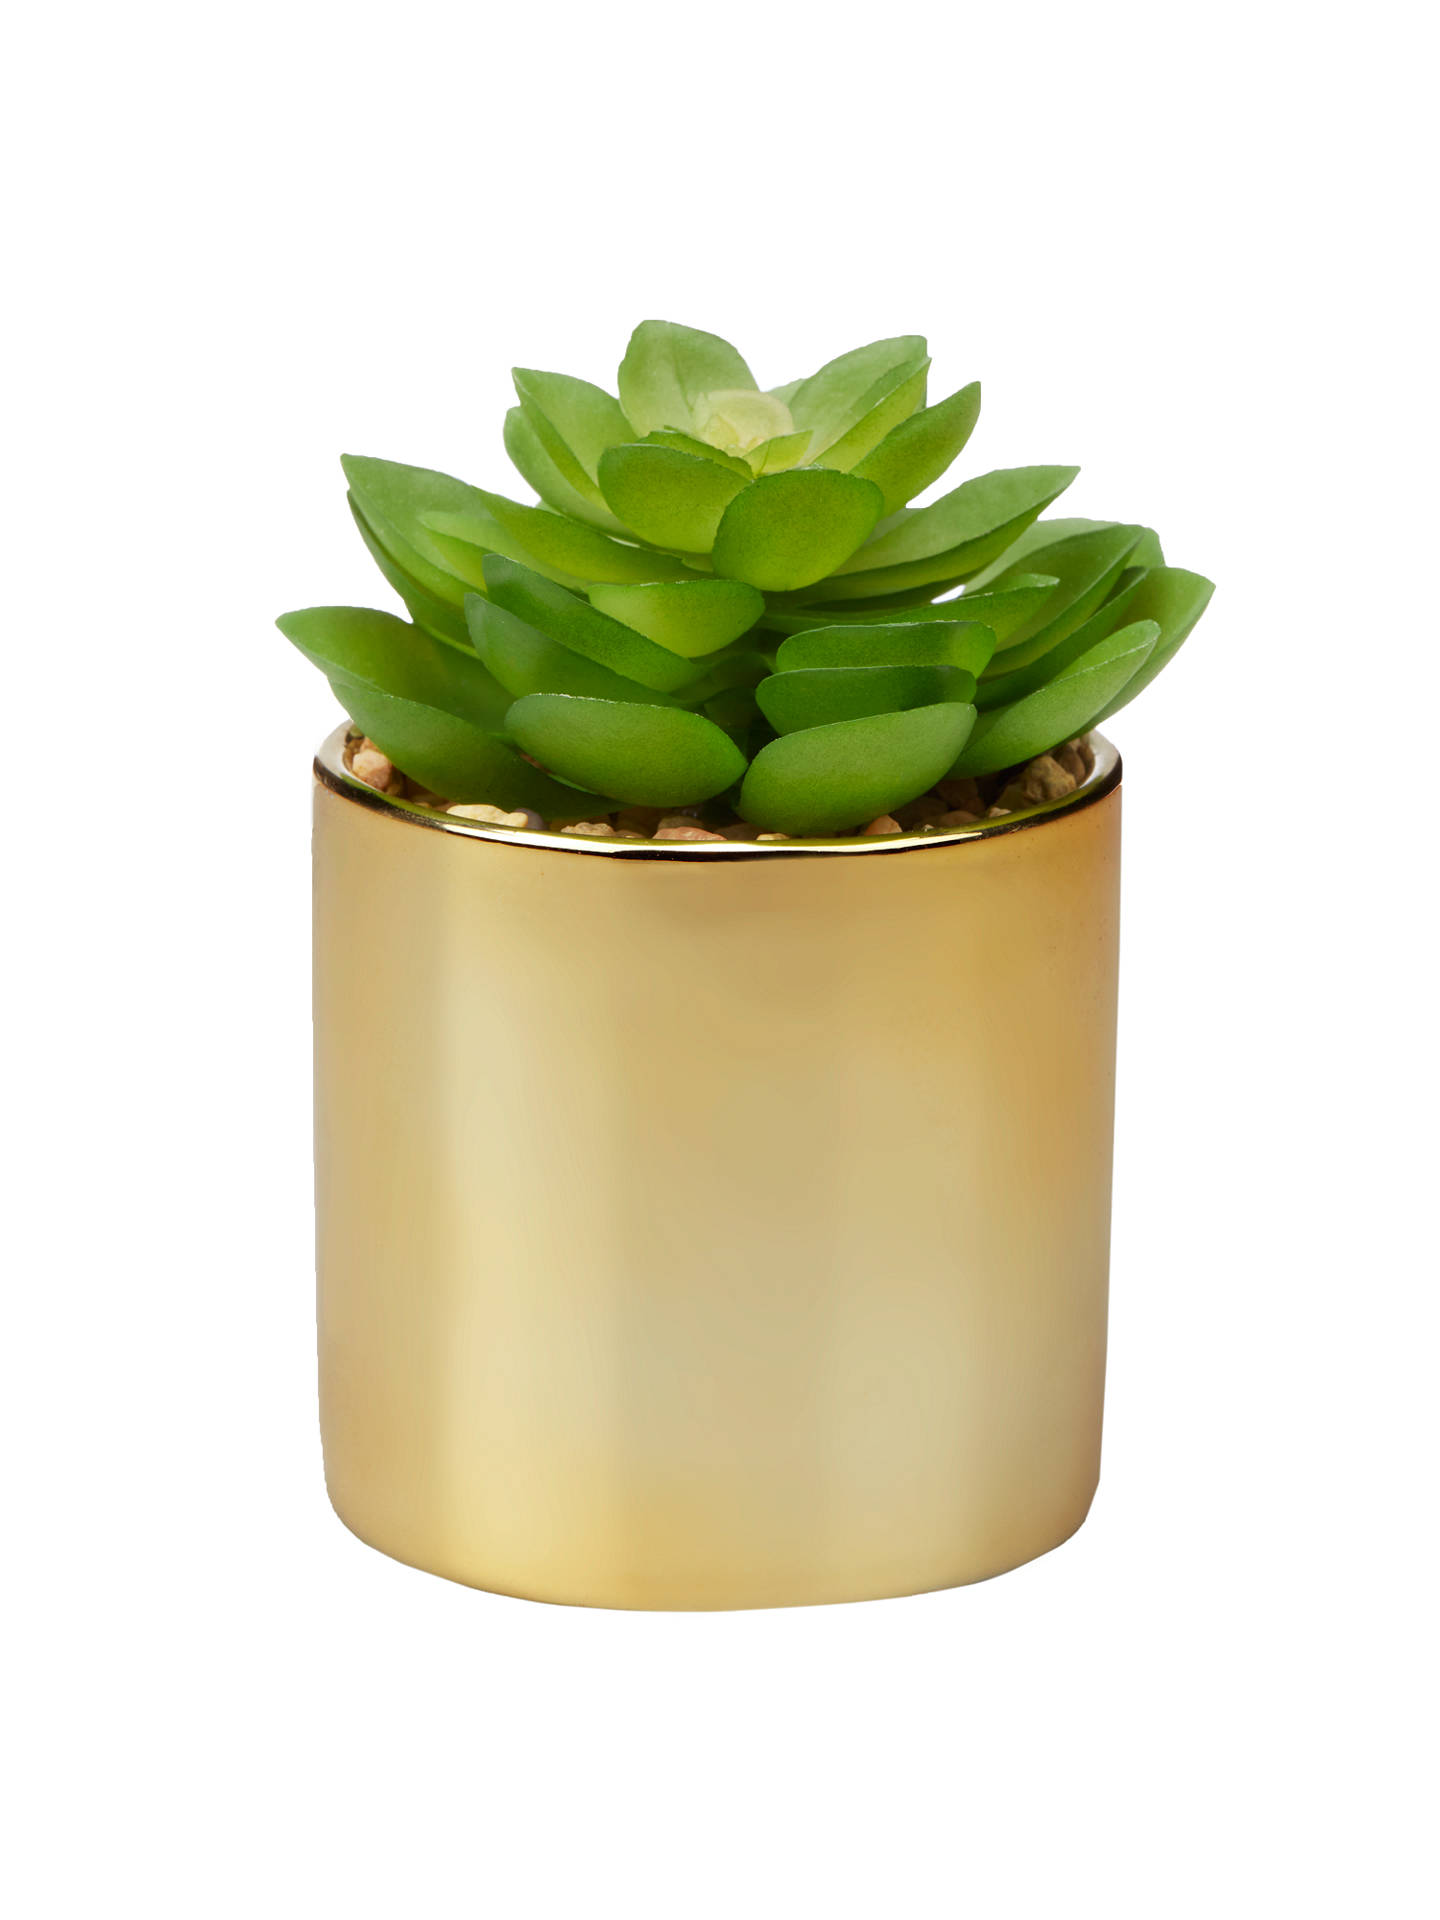 Buy John Lewis & Partners Artificial Flat Succulent Plant in Gold Pot Online at johnlewis.com